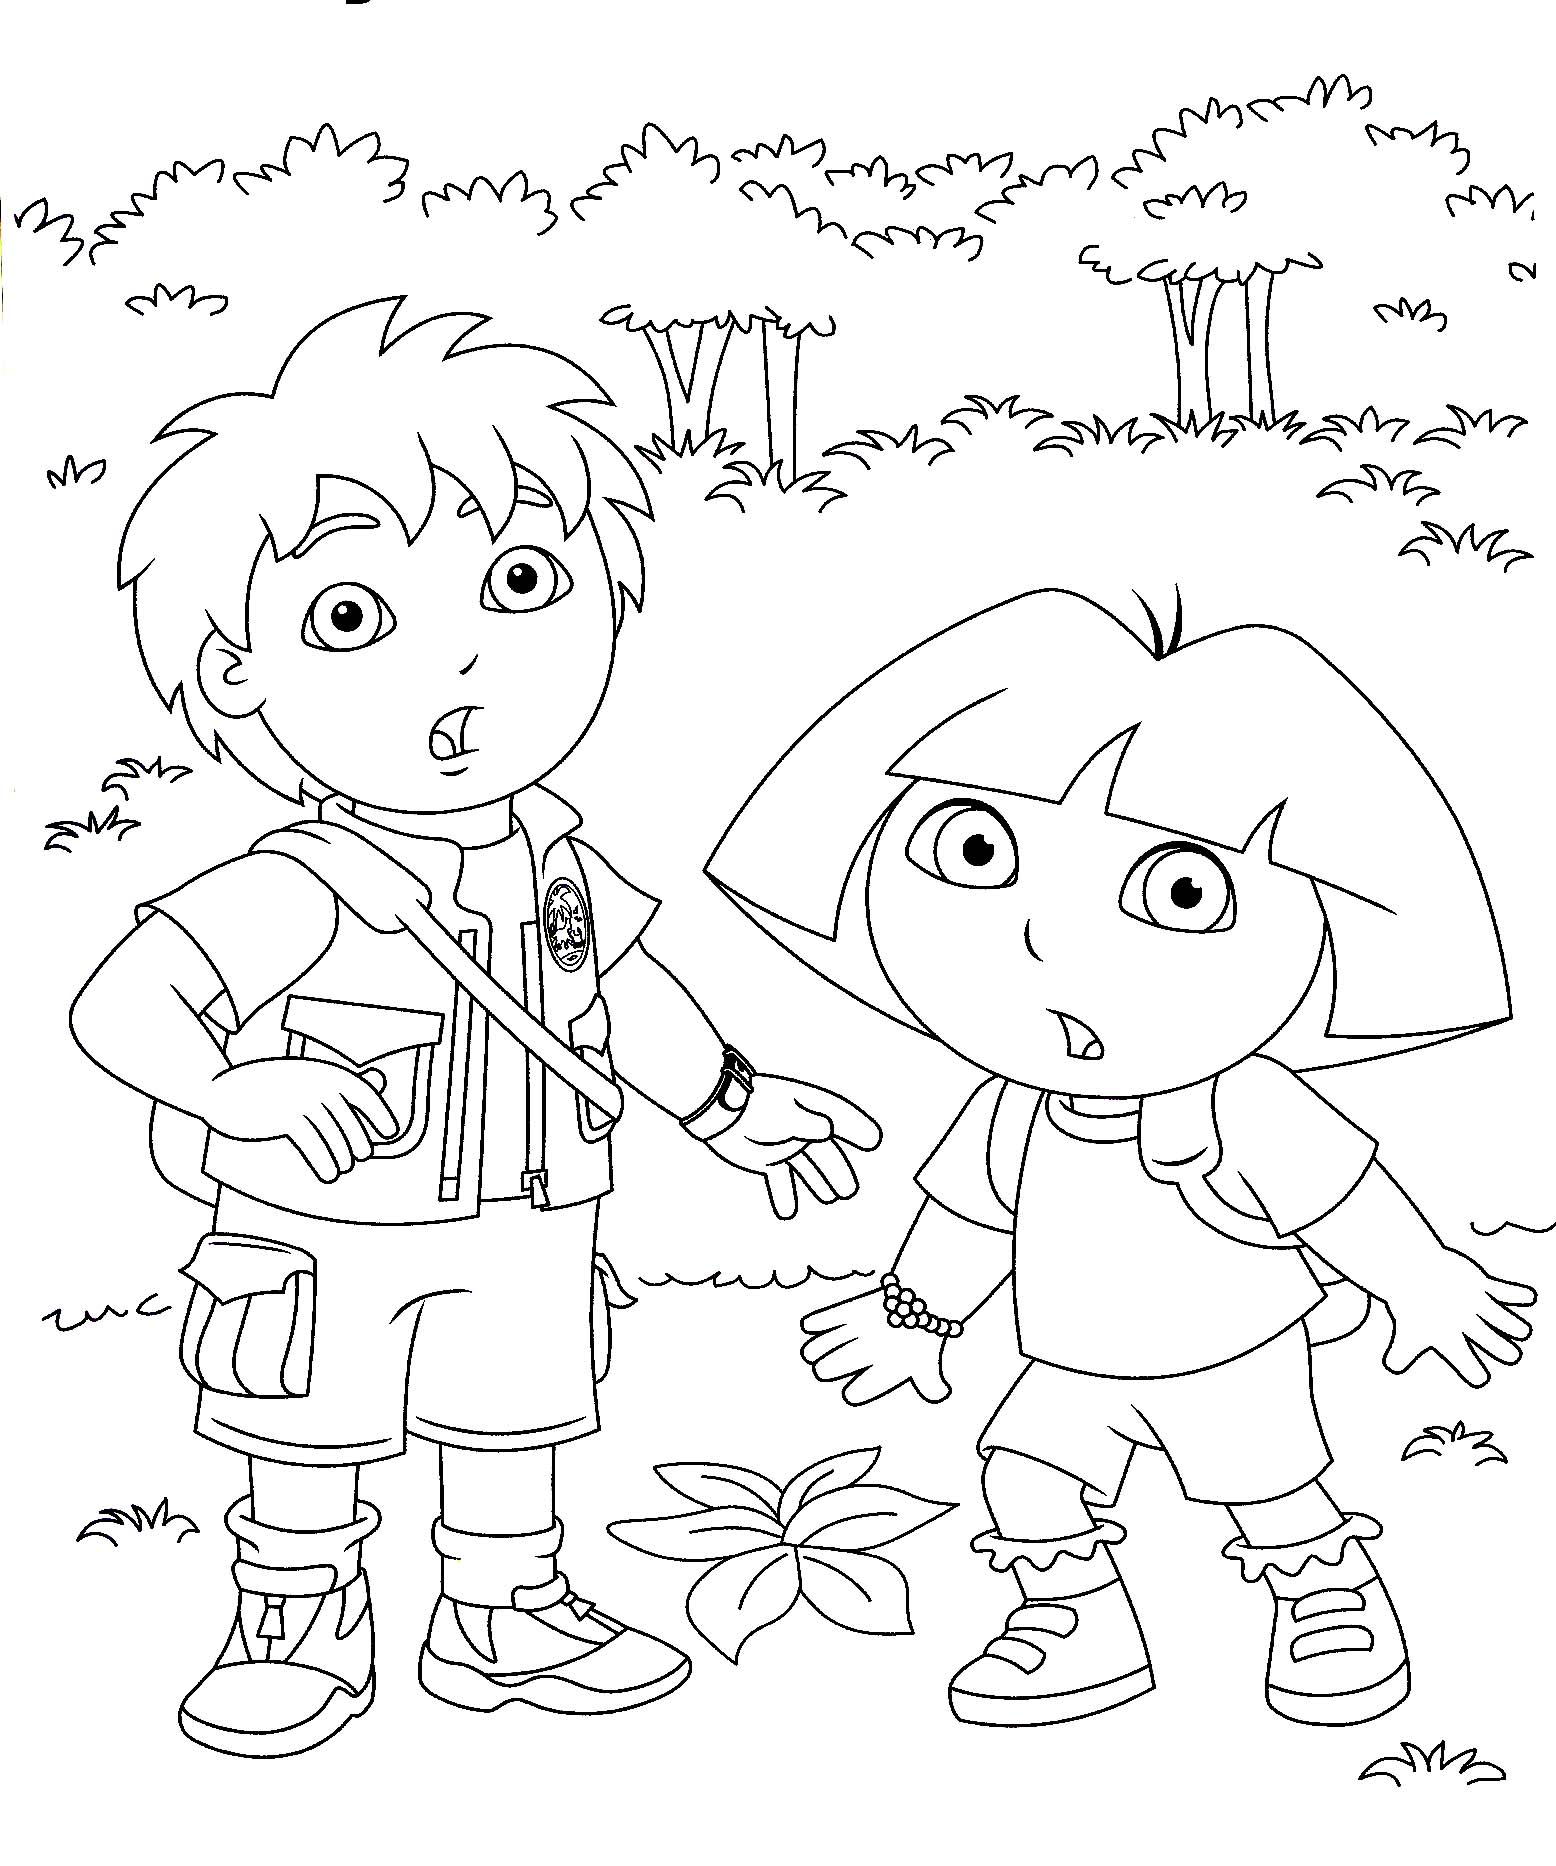 chargers coloring pages chargers coloring helmet pages 2020 football coloring pages chargers